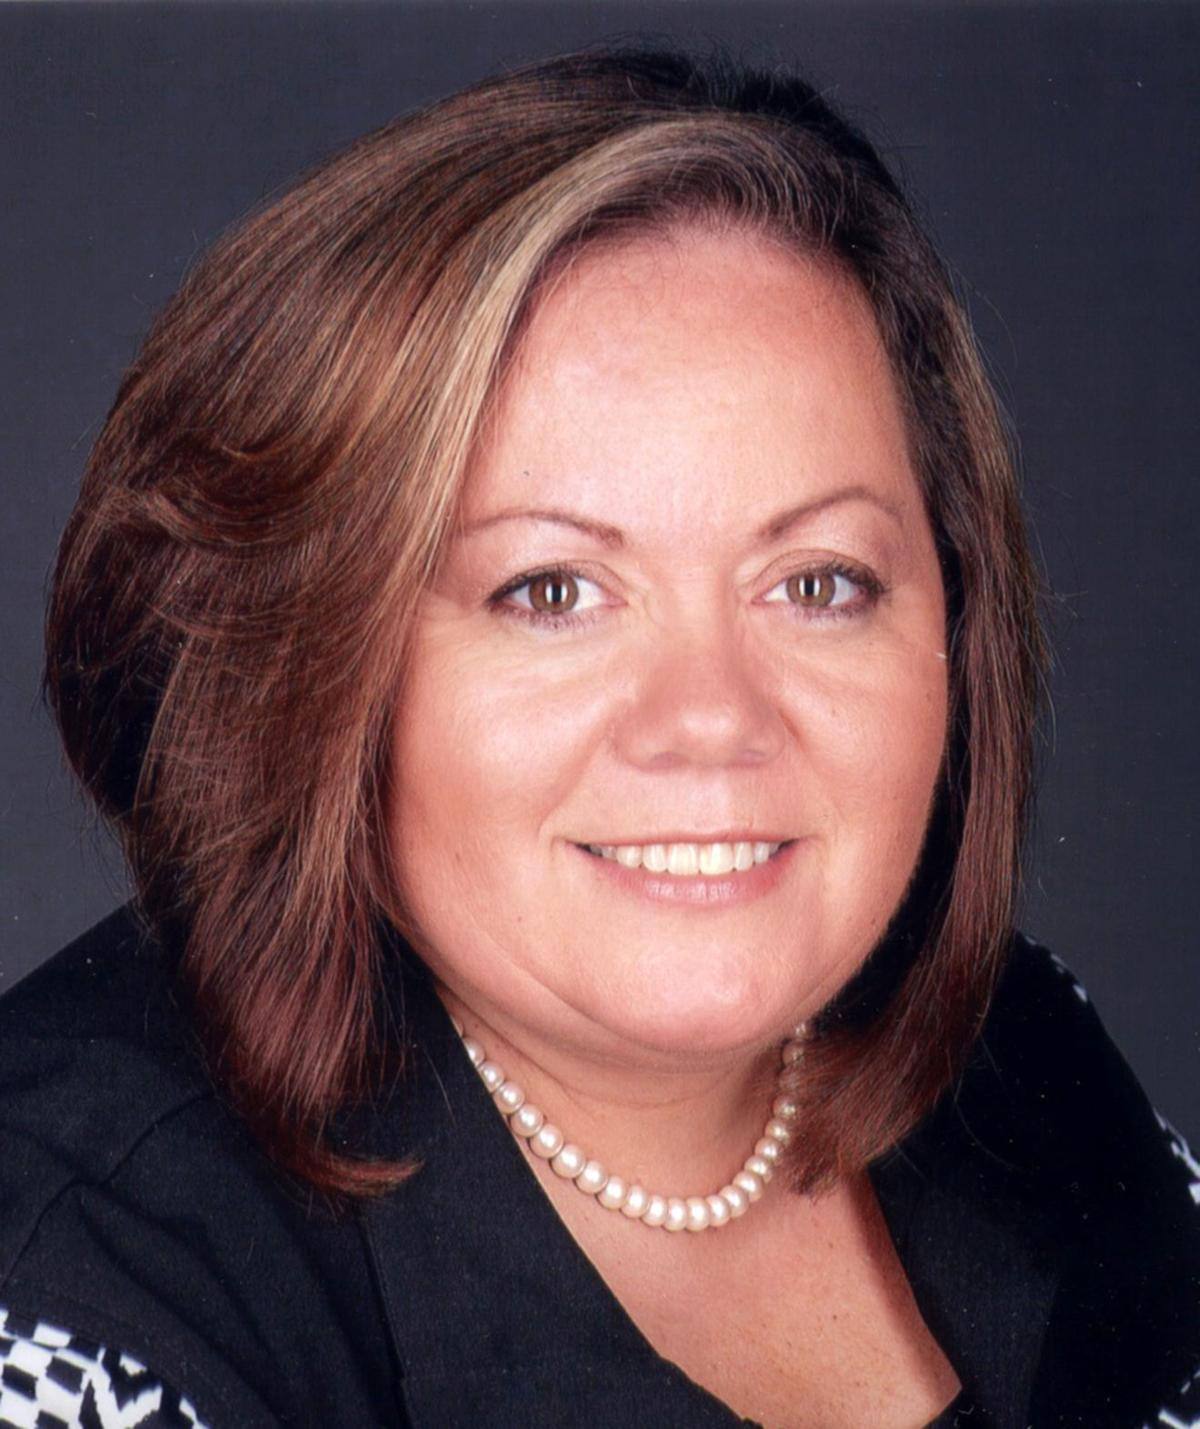 Joanna King: Republican candidate in the District 12 Indiana Senate race in 2016 primary election